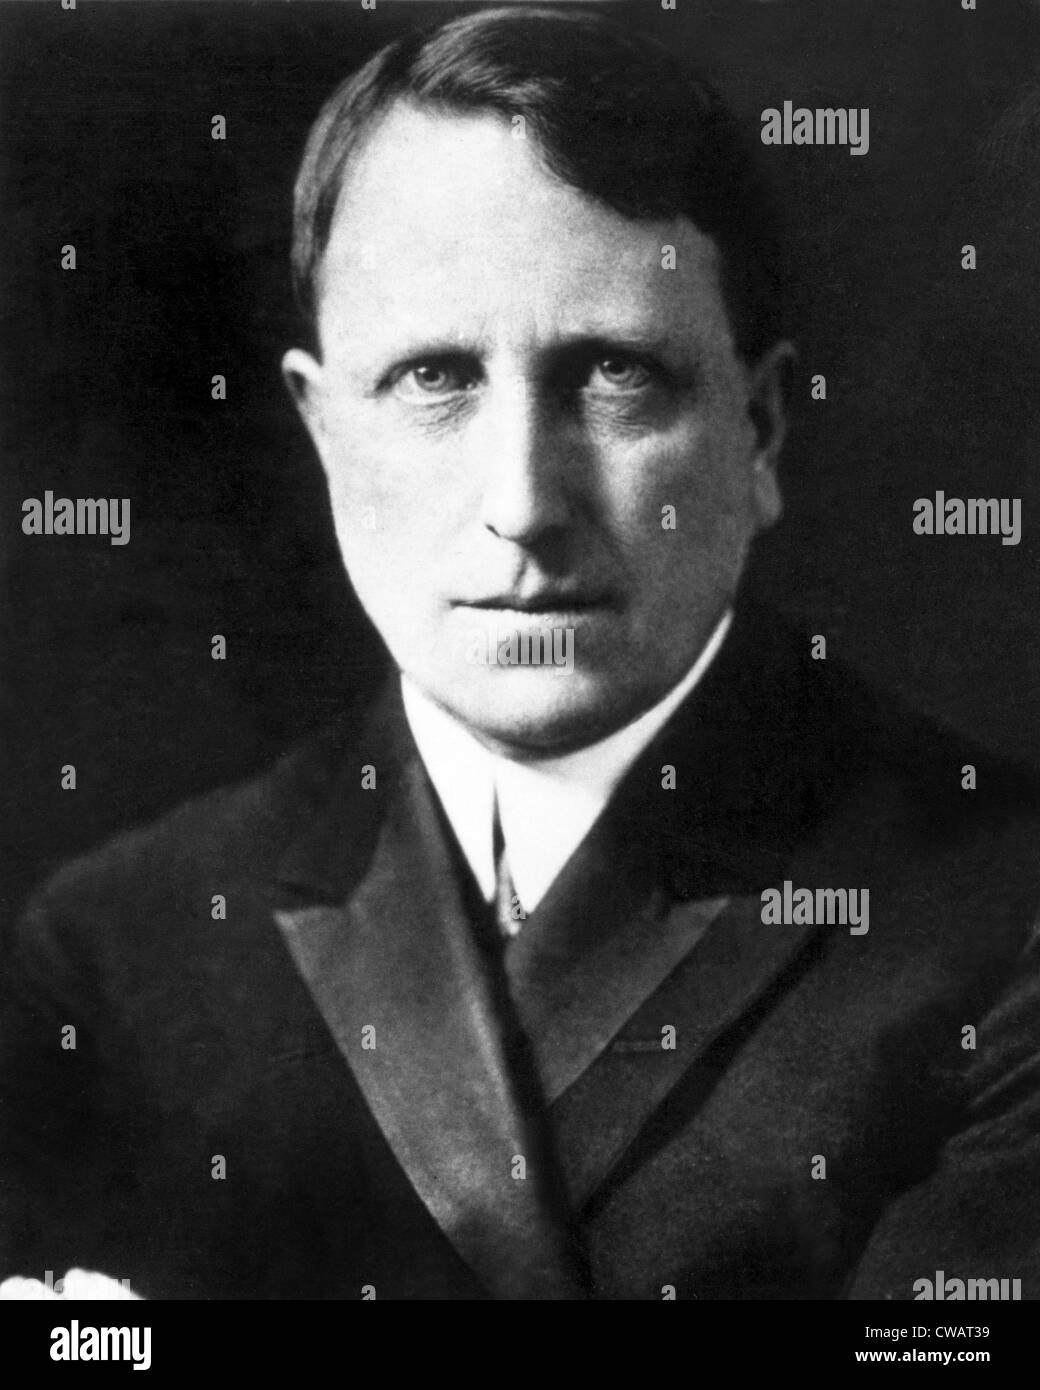 WILLIAM RANDOLPH HEARST, c. early 1900s. Courtesy: CSU Archives / Everett Collection Stock Photo